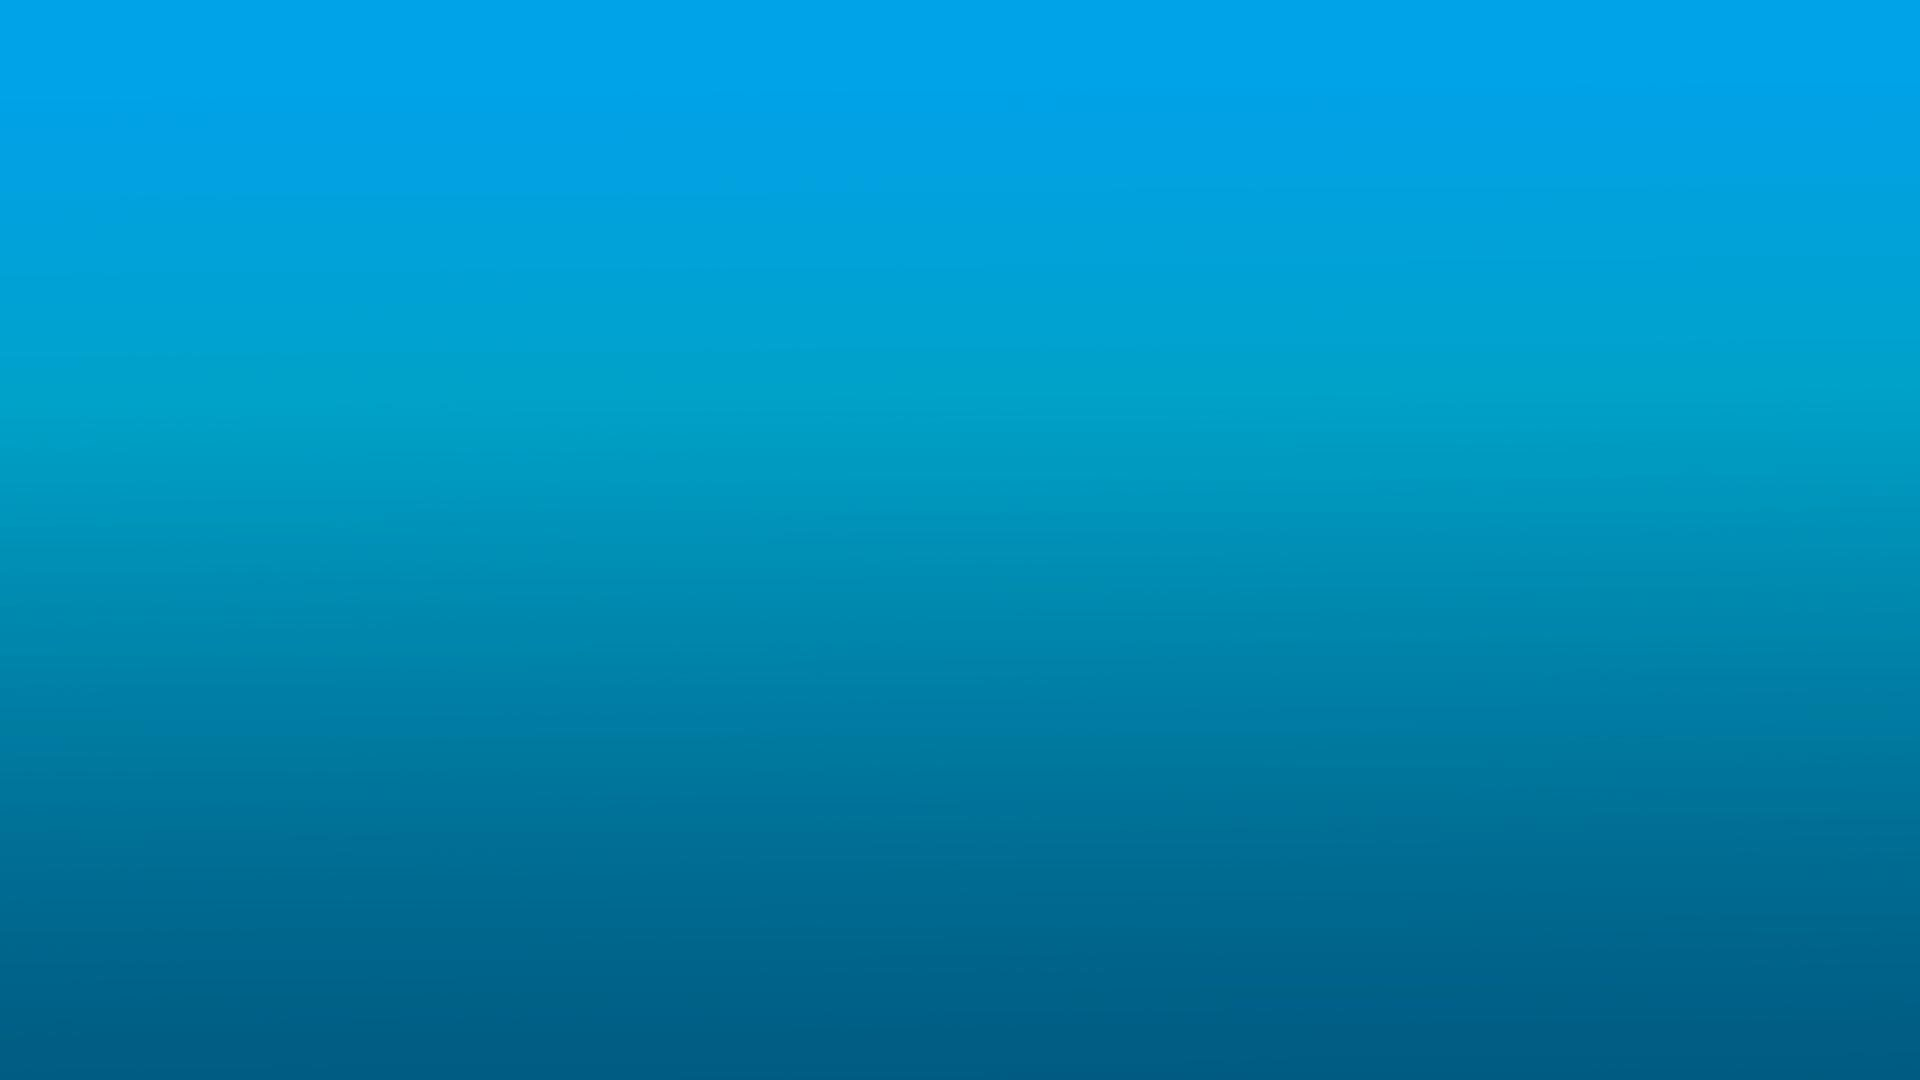 Blue Gradient Background Blue Background Colors 1920x1080